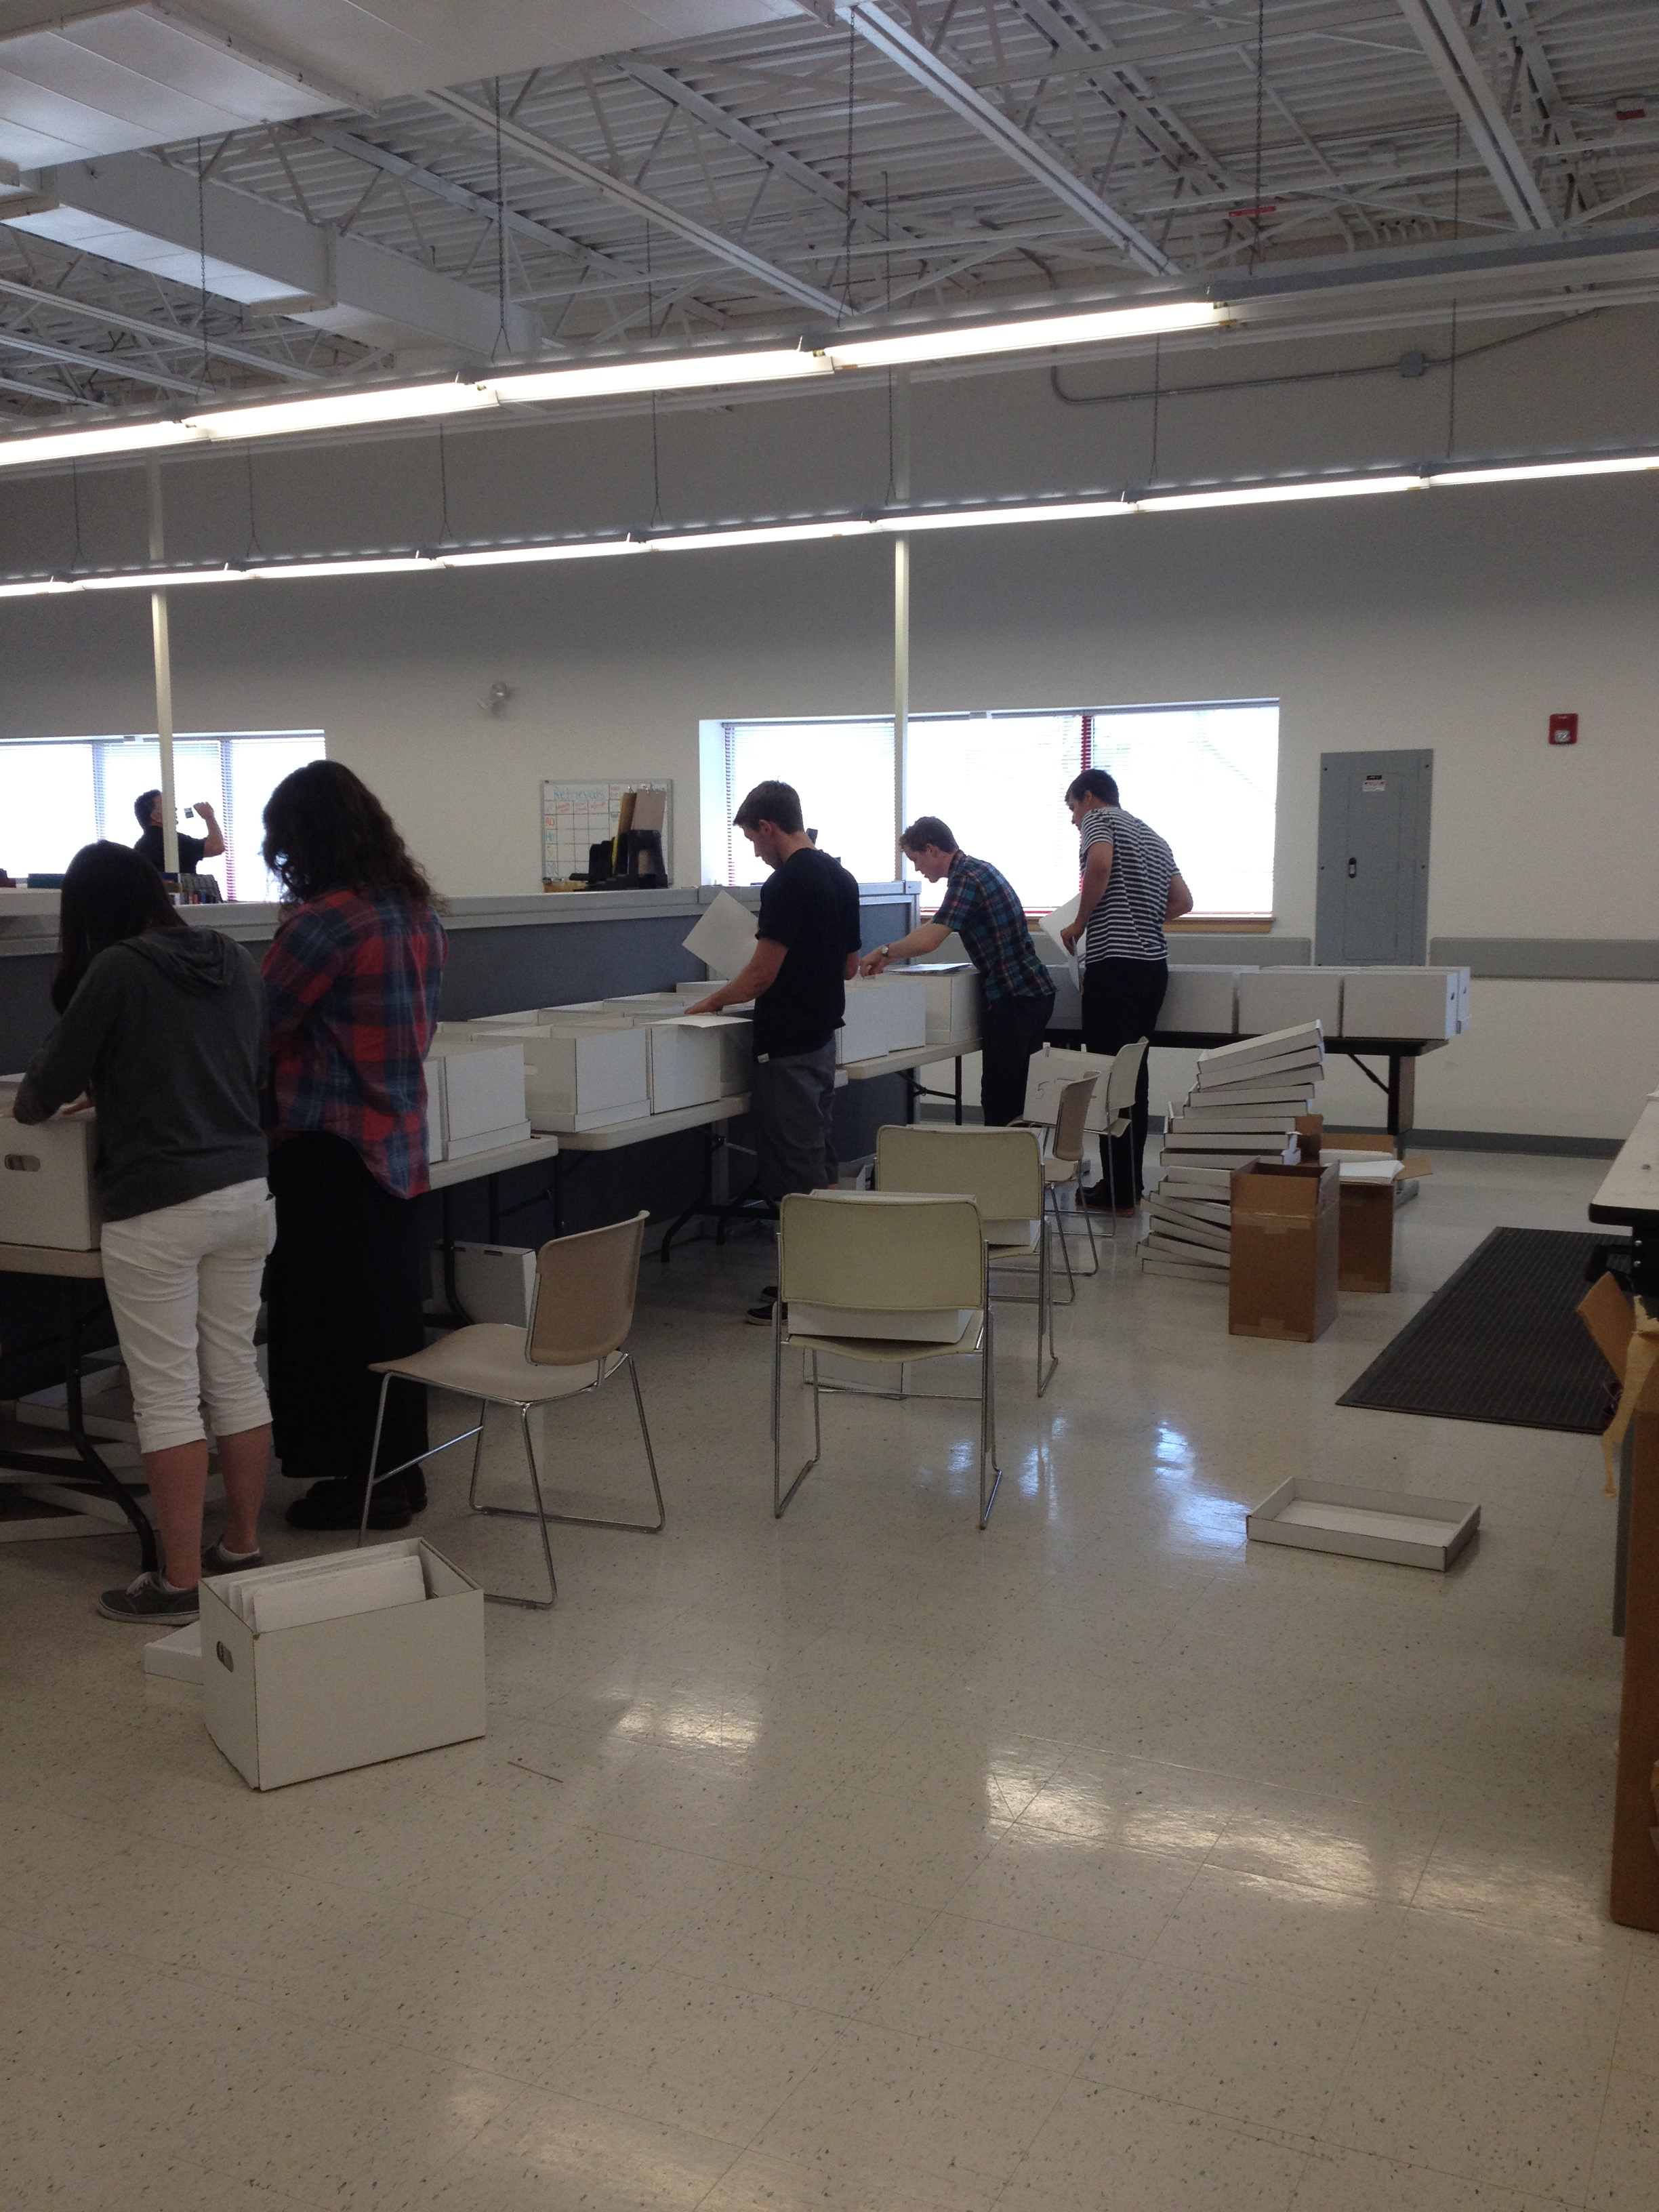 Students Filing the Material Into Alpha Boxes